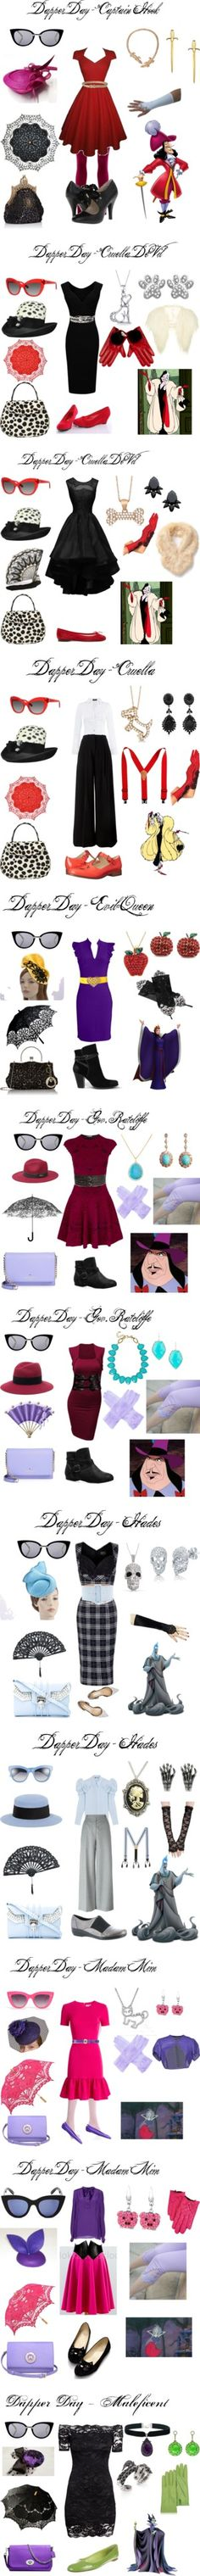 Dapper Day - Villains by owlqween on Polyvore featuring disneybound, villains, dapperday, Villainbound, HotSquash, A.V. Max, Bernard Delettrez, Fendi, Cultural Intrigue and captainhook